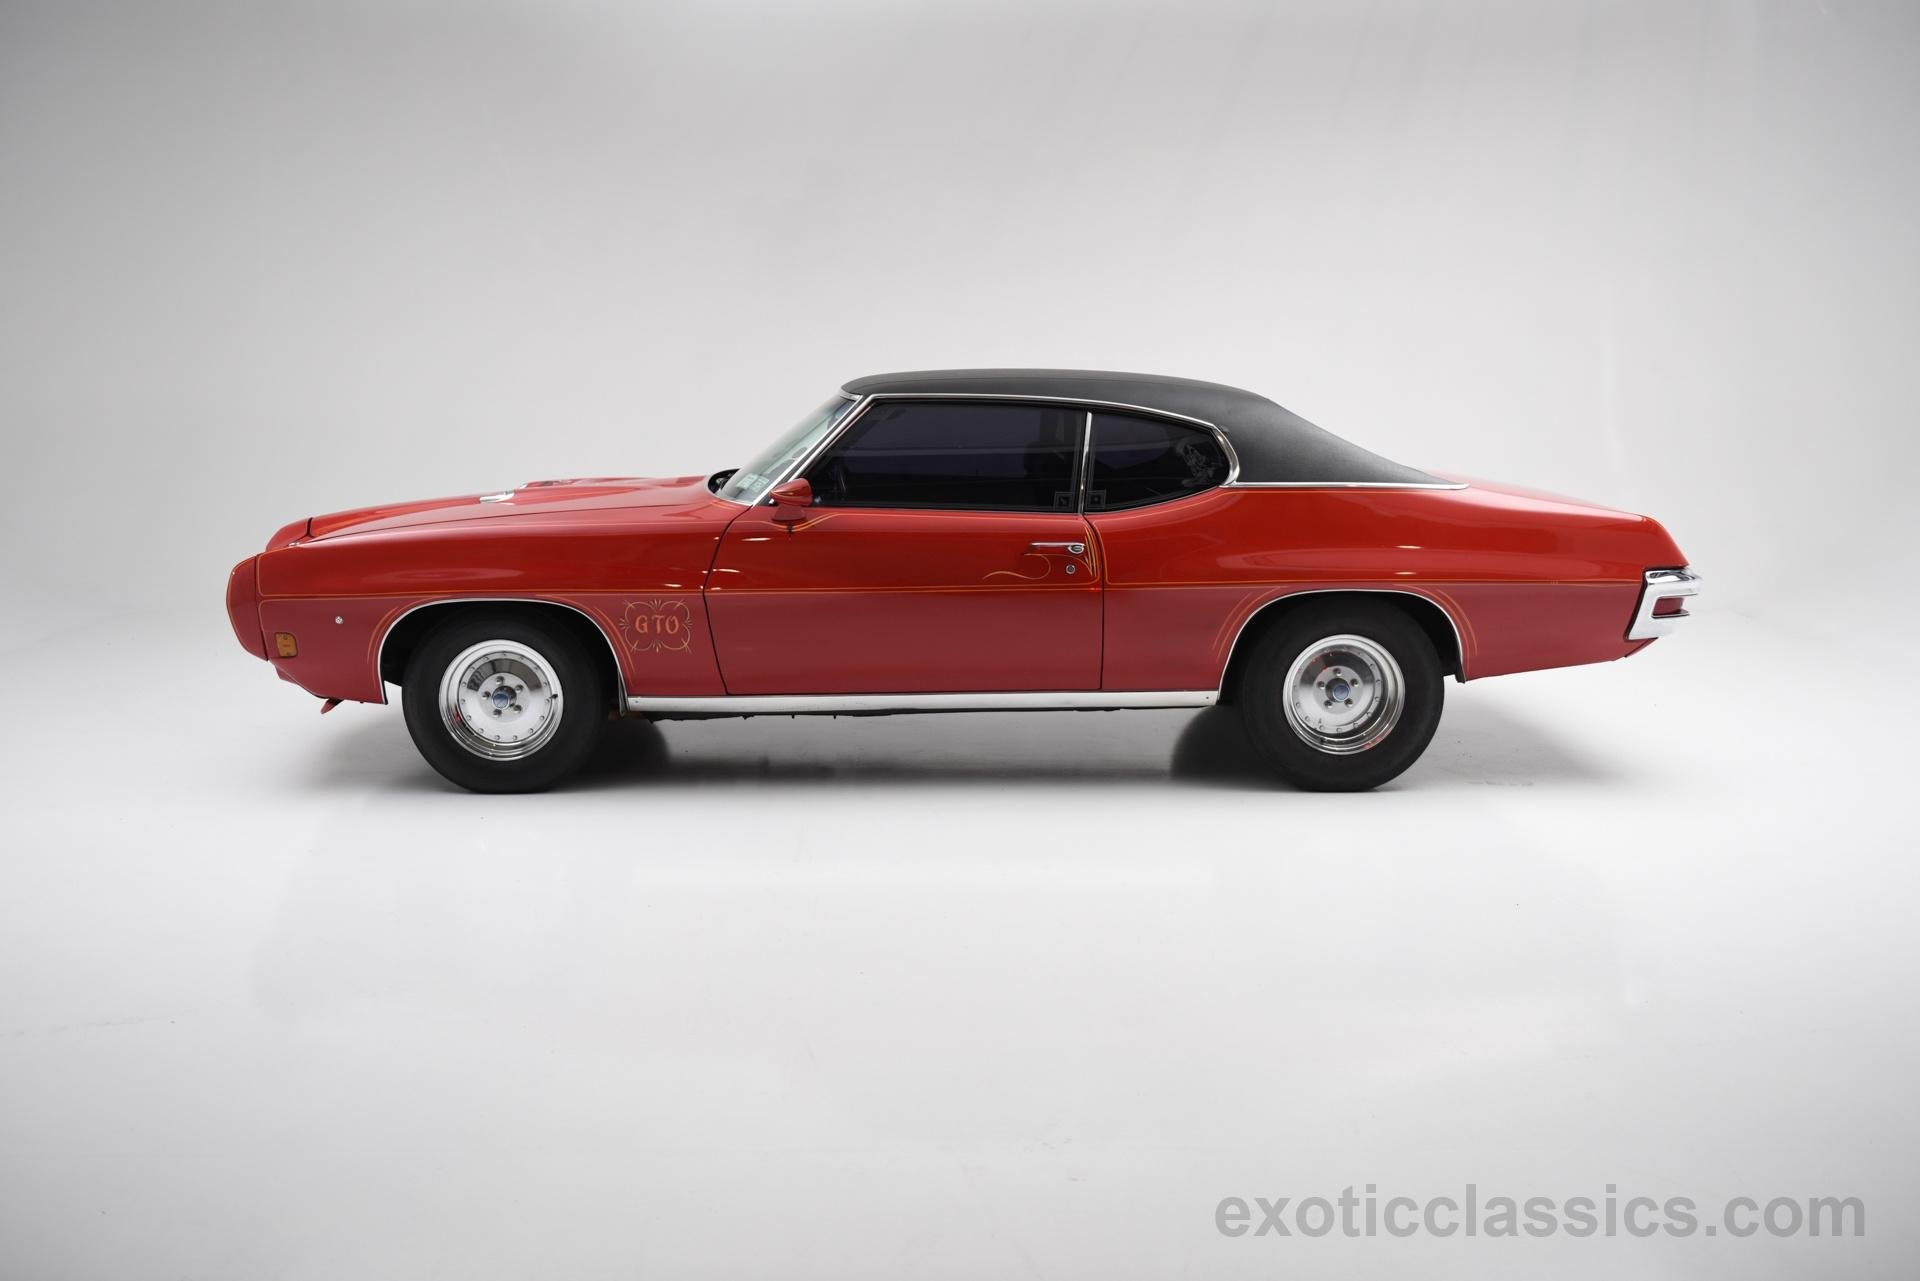 1970 PONTIAC GTO coupe classic cars red wallpaper 1920x1281 711251 1920x1281